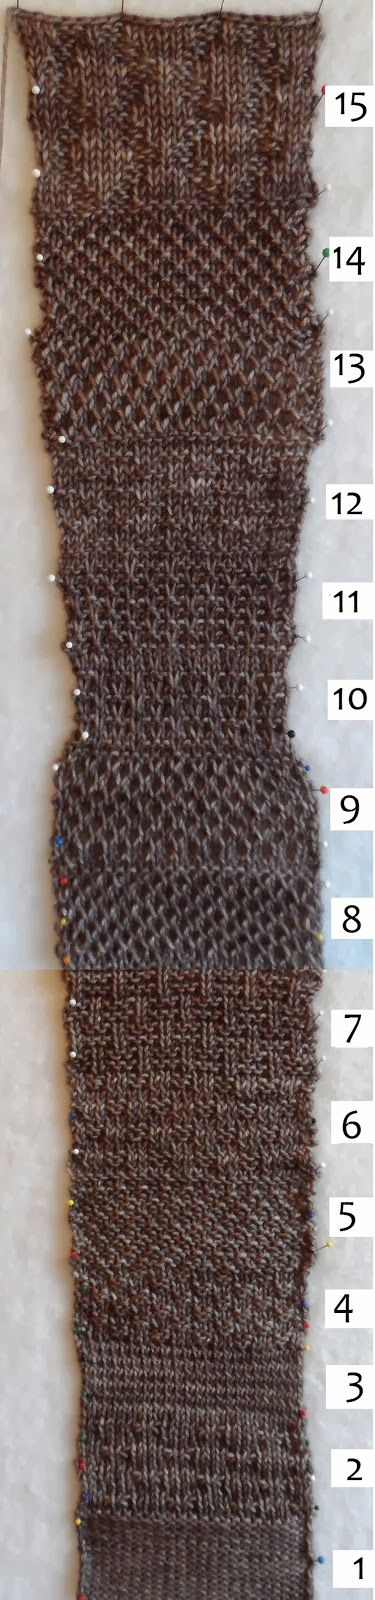 Knitting Interesting Stitches : Same yarn, same number of stitches, different stitch patterns. Interesting. ...